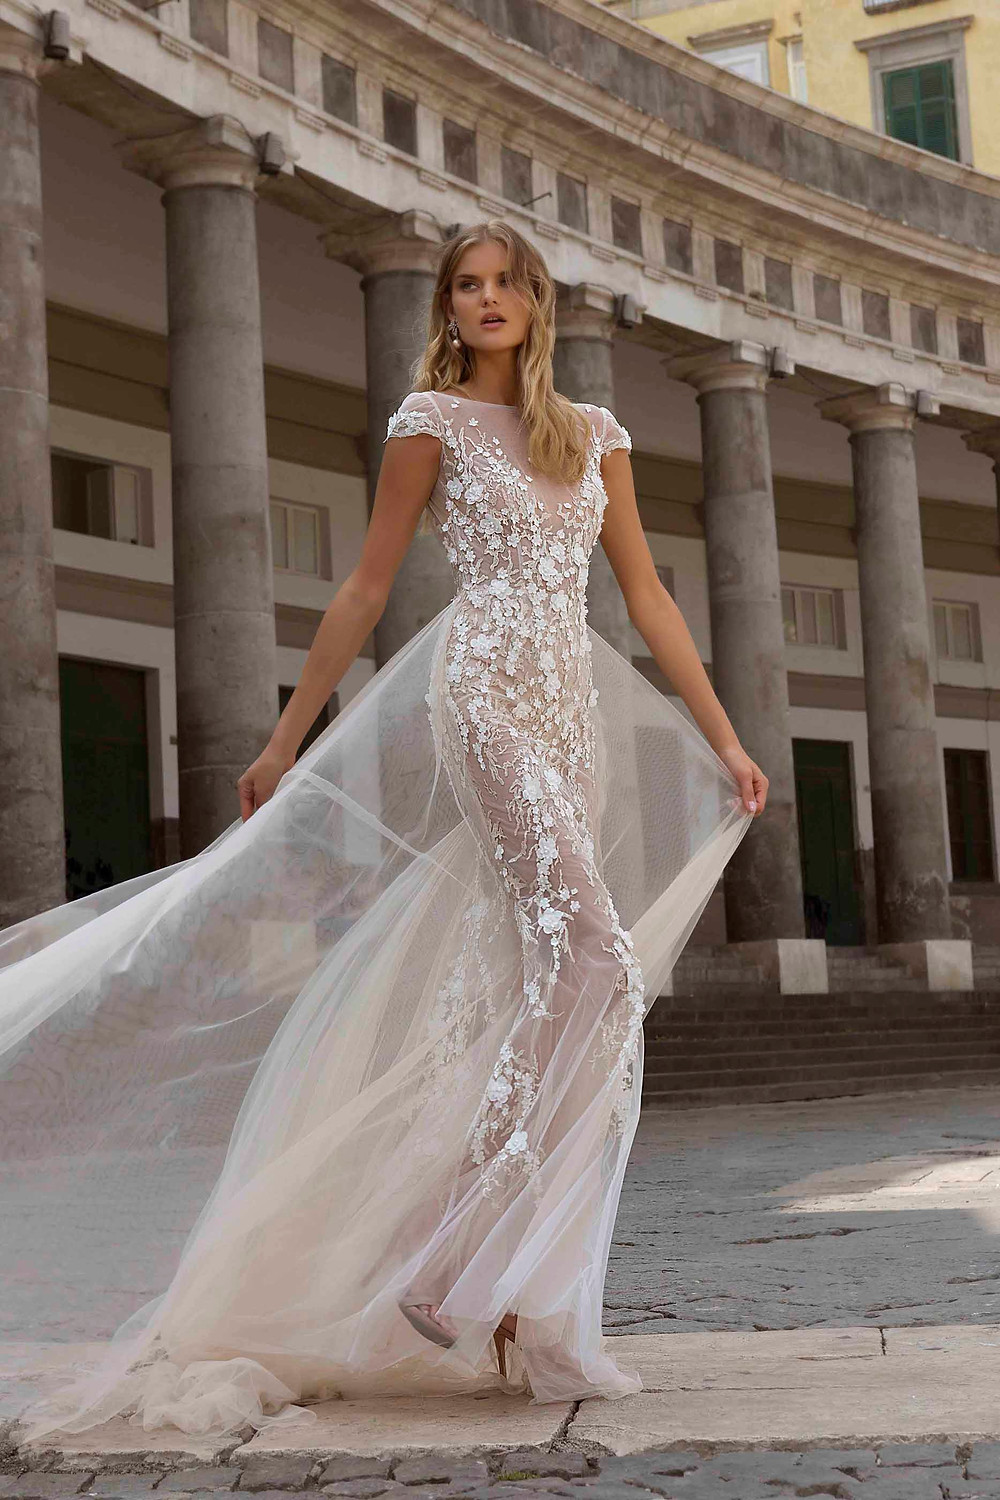 A Berta 2020 tulle sheath wedding dress, with cap sleeves, lace and tulle detachable skirt